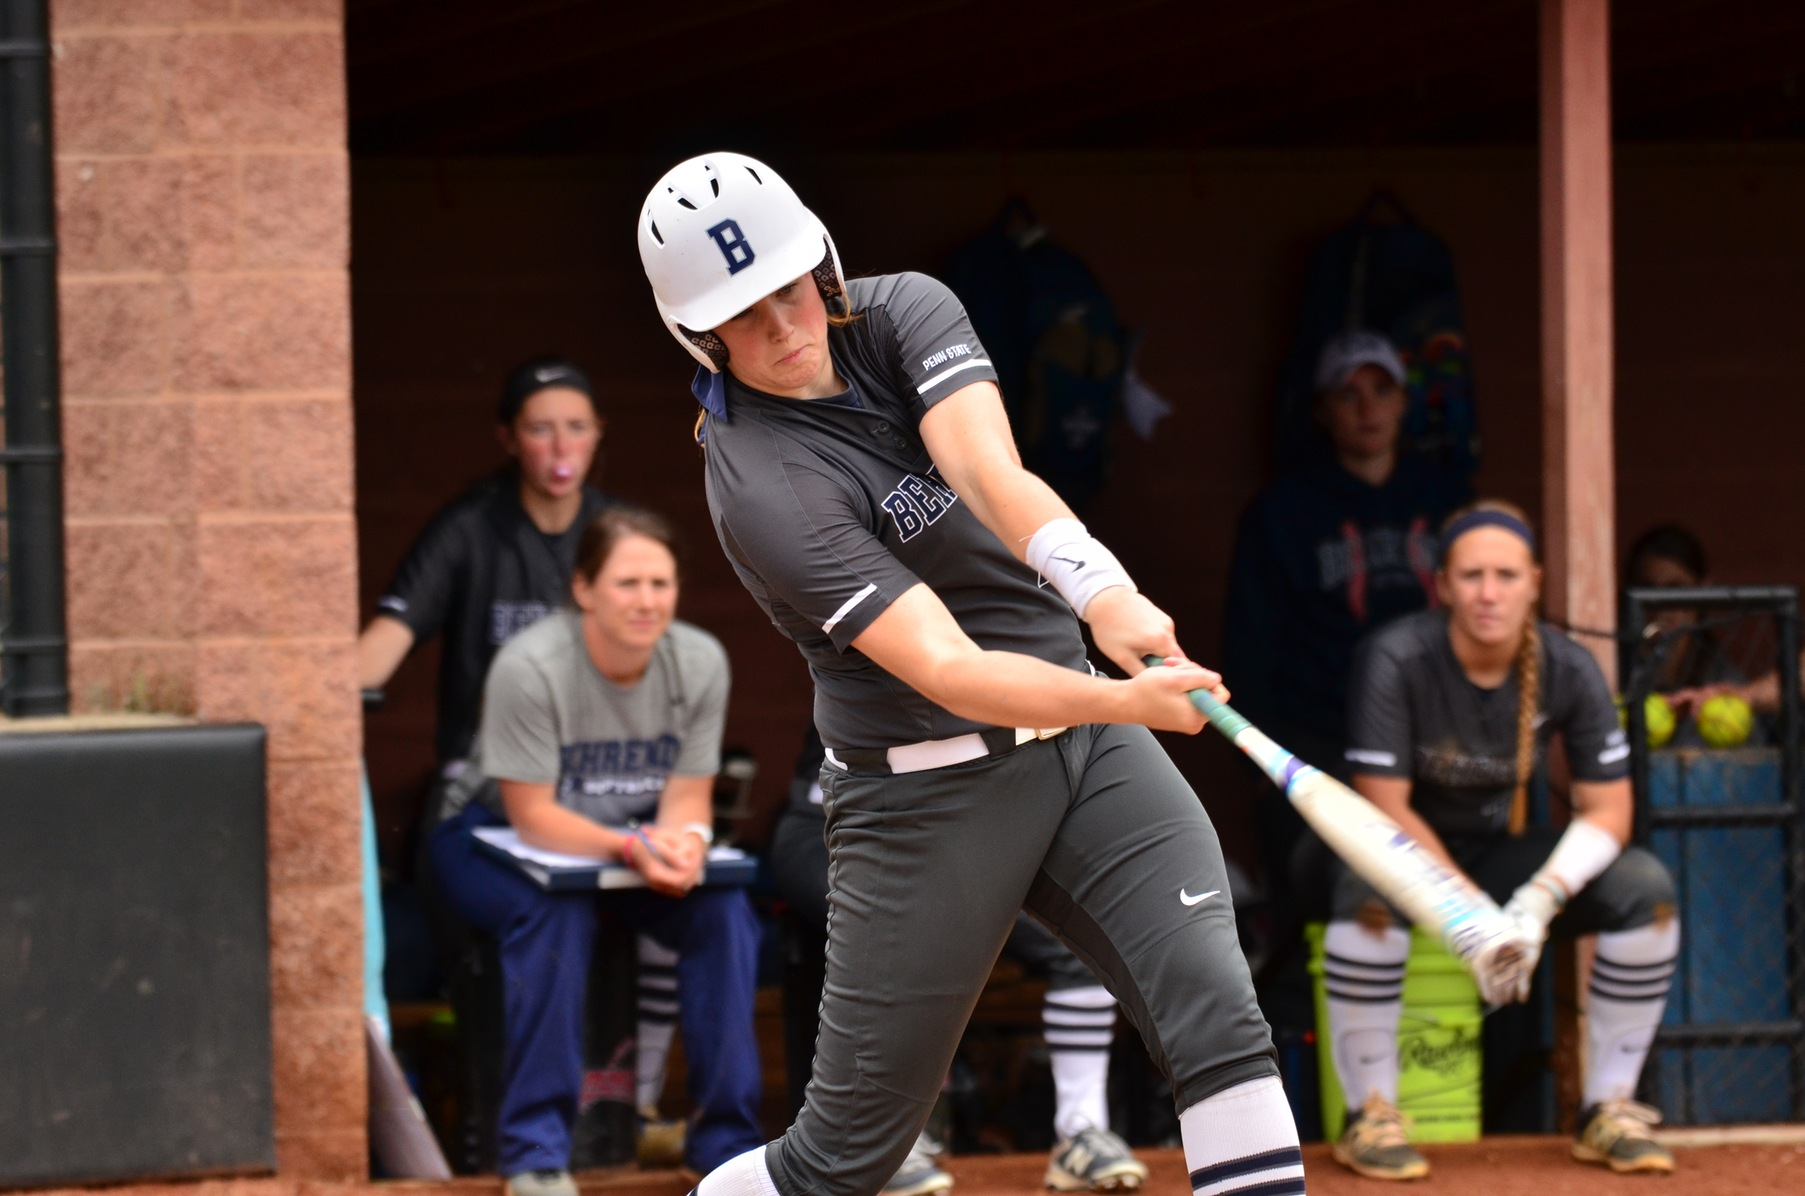 Softball Wins Two Games; Kargol Hits Three-Run Home Run